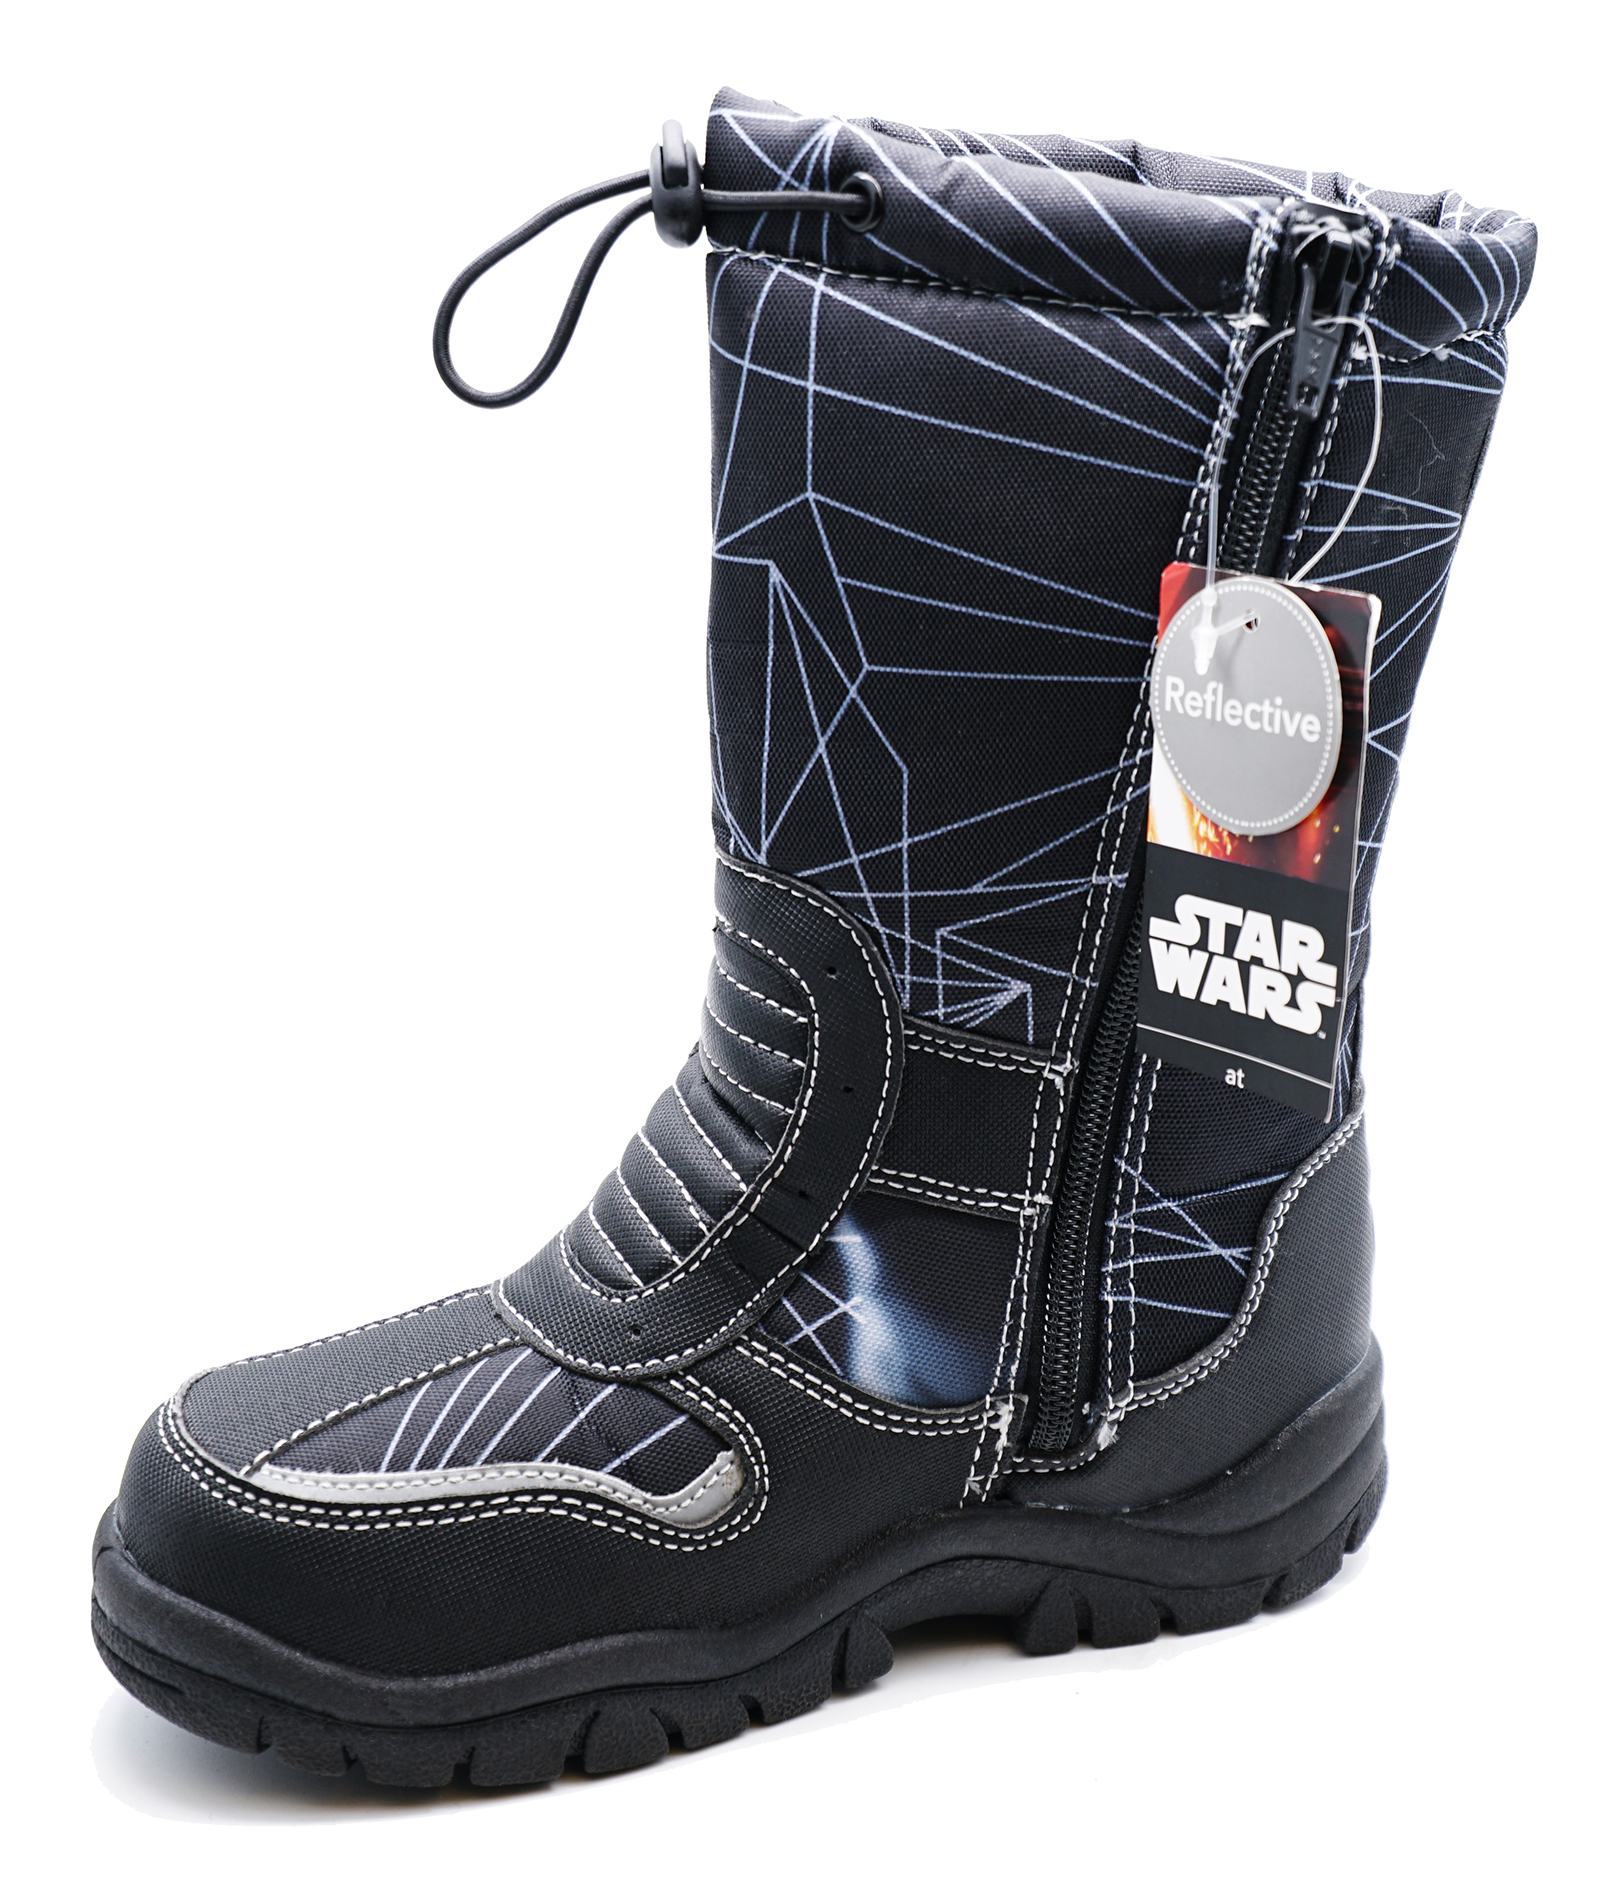 thumbnail 8 - BOYS-KIDS-CHILDRENS-STAR-WARS-WARM-WINTER-RAIN-SPLASH-SNOW-BOOTS-WELLIES-8-2